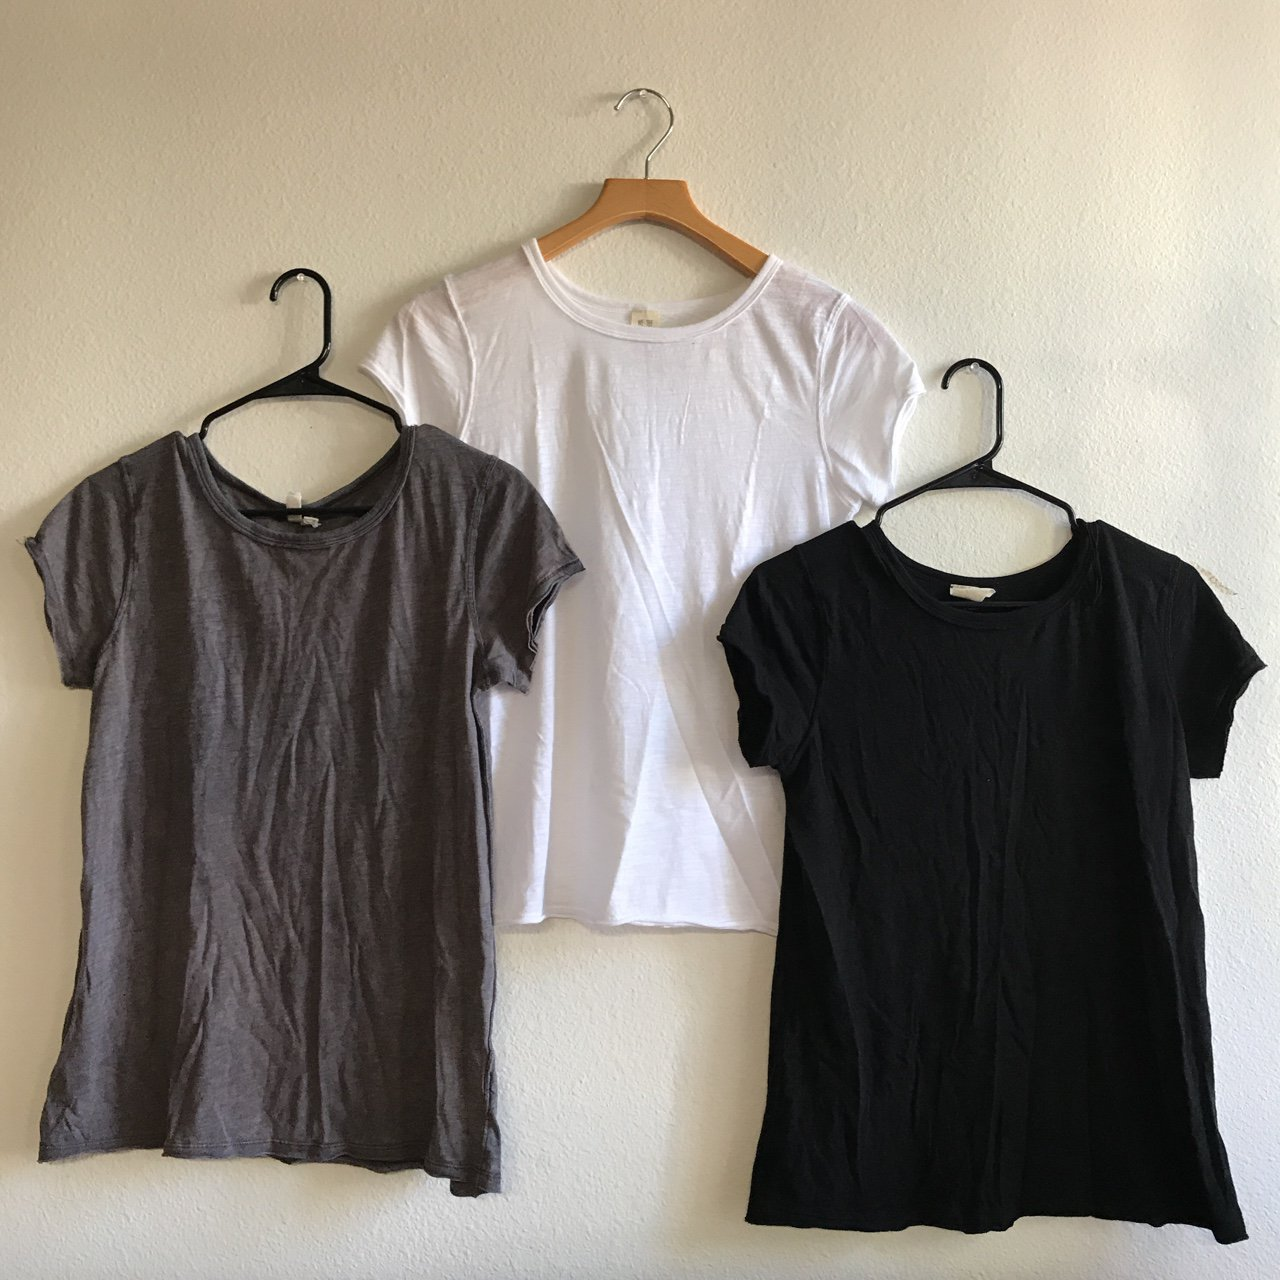 840852345d959 Free People Basic Tees Material